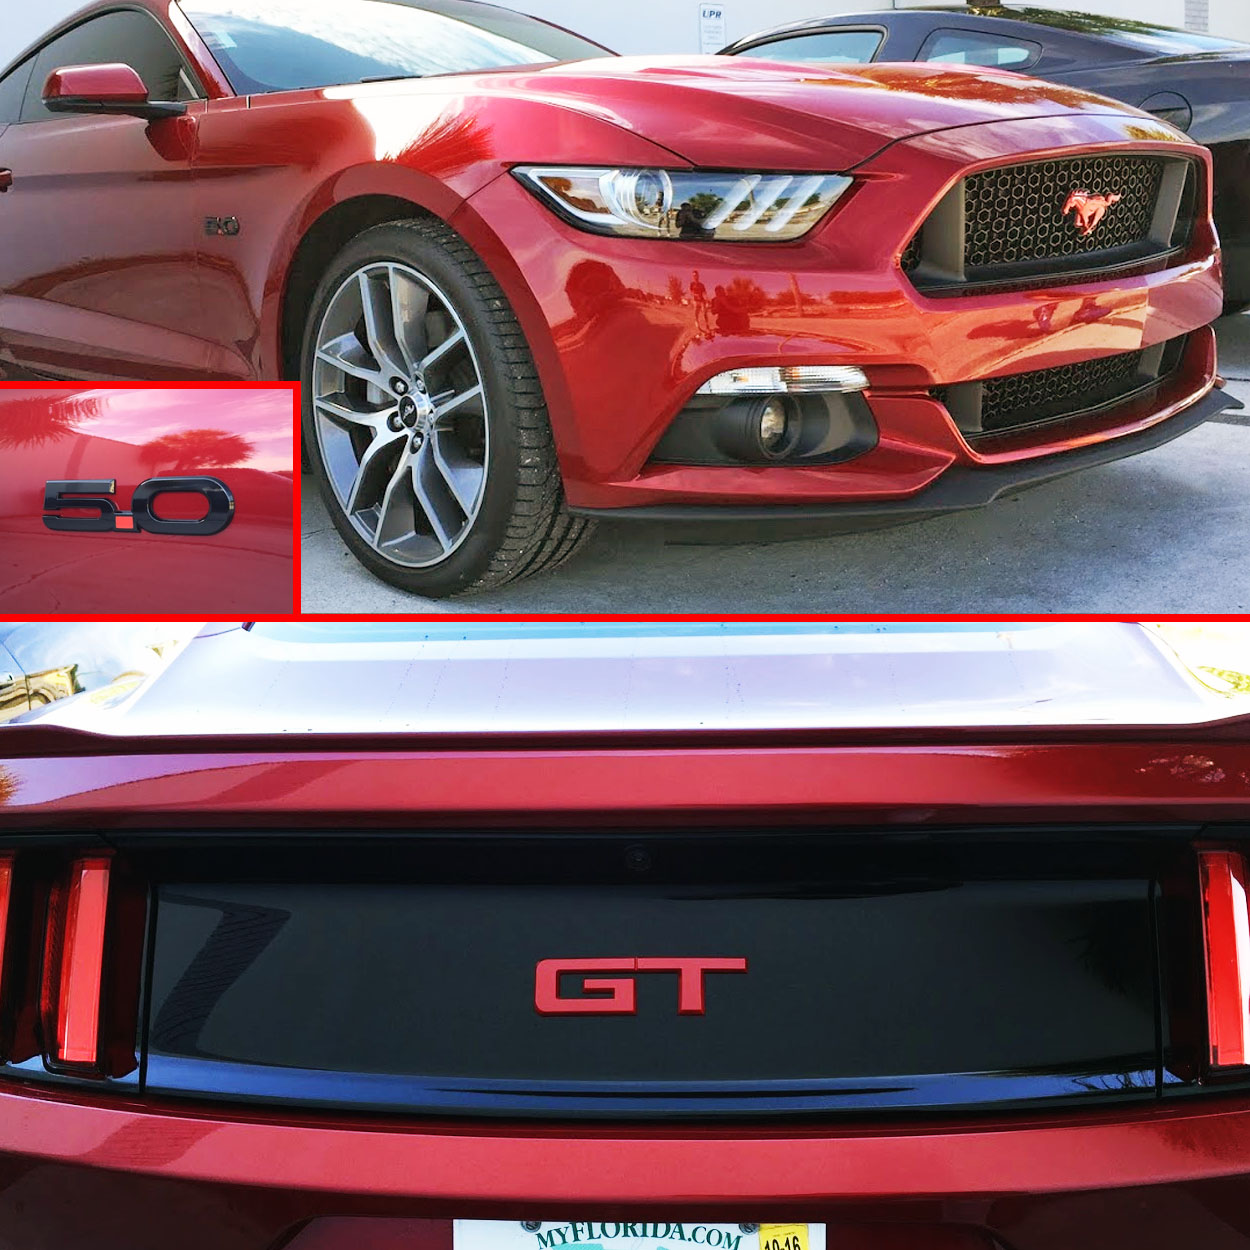 15-17 Mustang GT Emblem Package Color Coded Ford ...